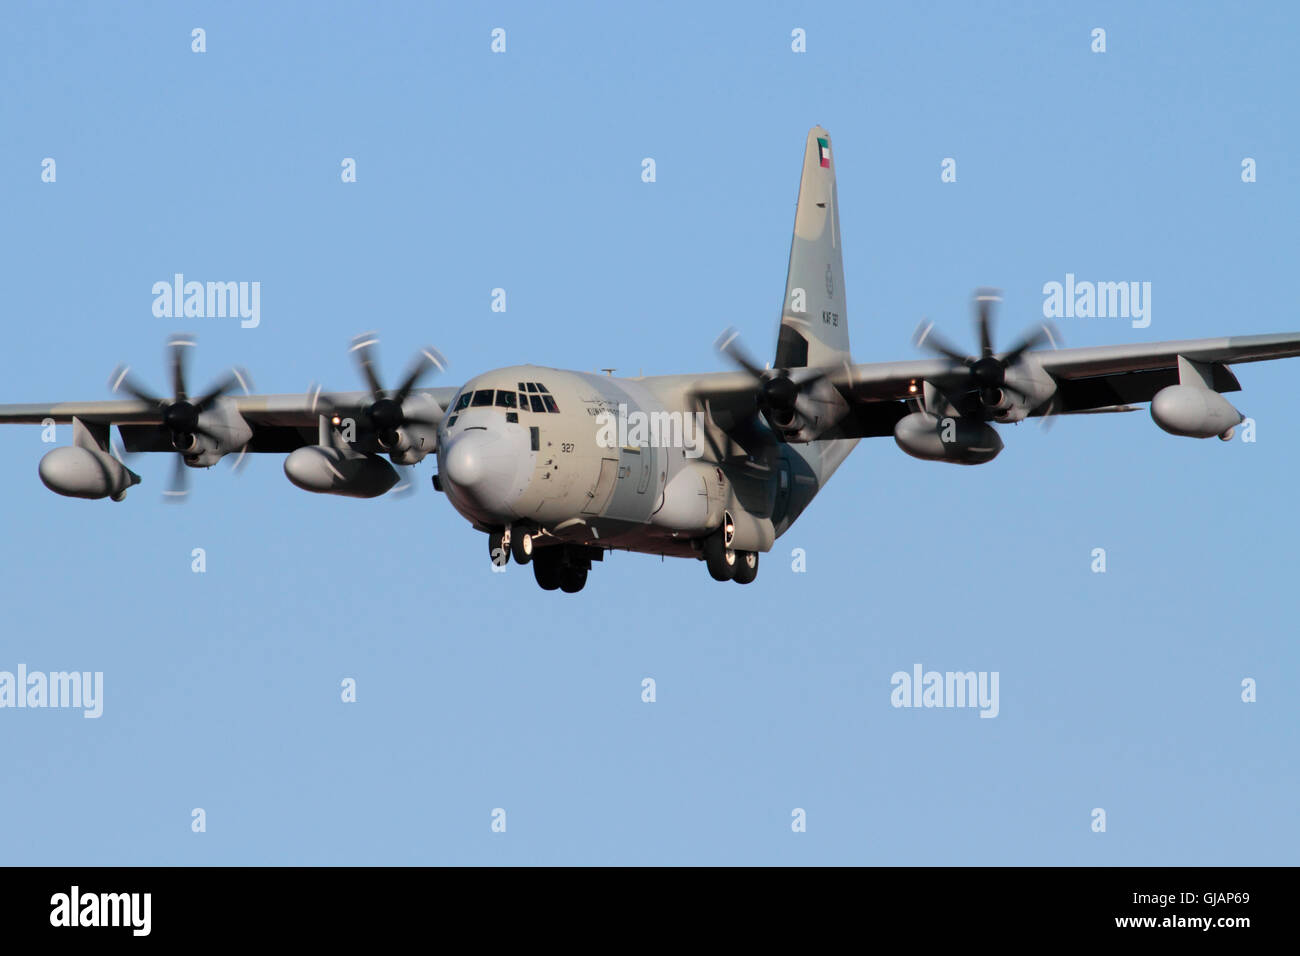 Lockheed Martin KC-130J Hercules four engine turboprop military transport plane of the Kuwait Air Force on approach - Stock Image